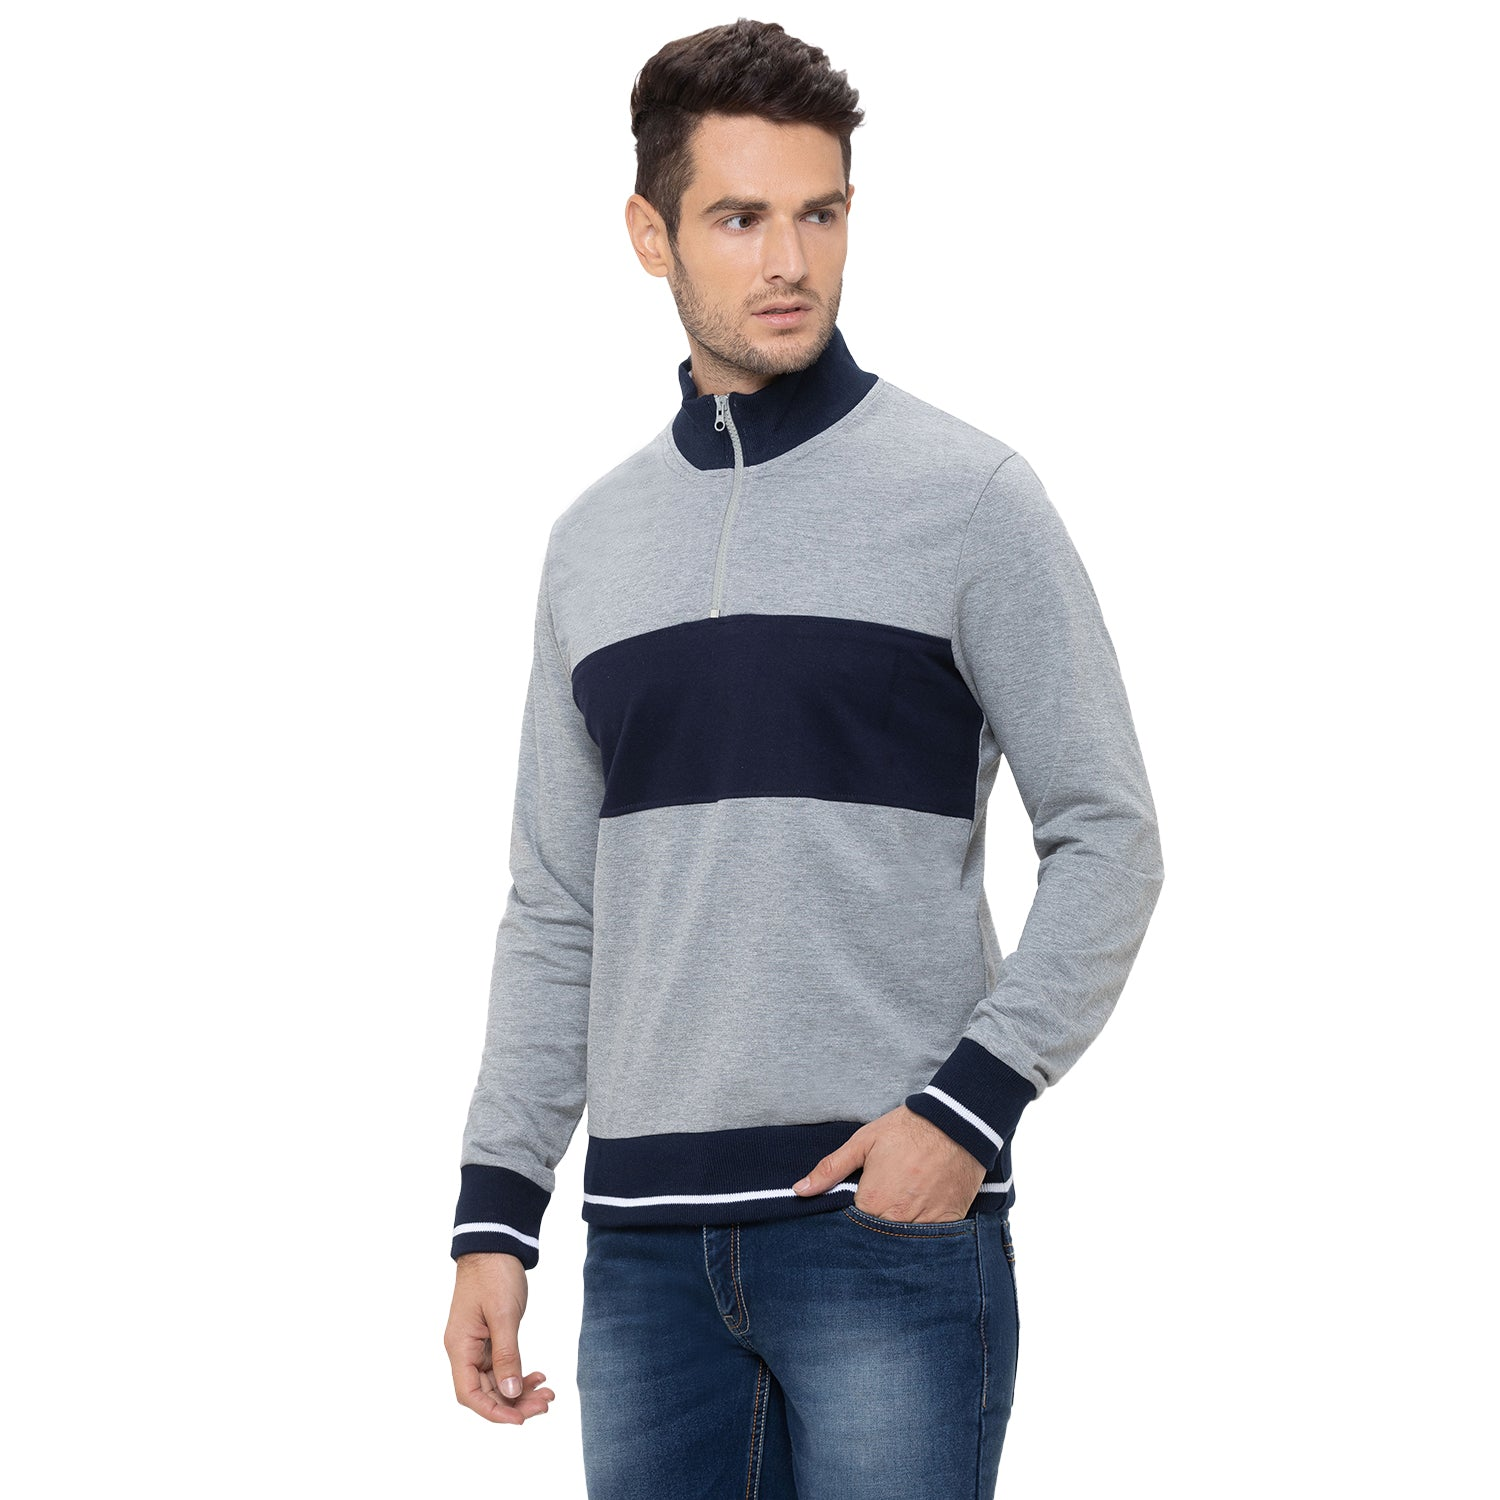 Globus Grey Striped Sweatshirt-4